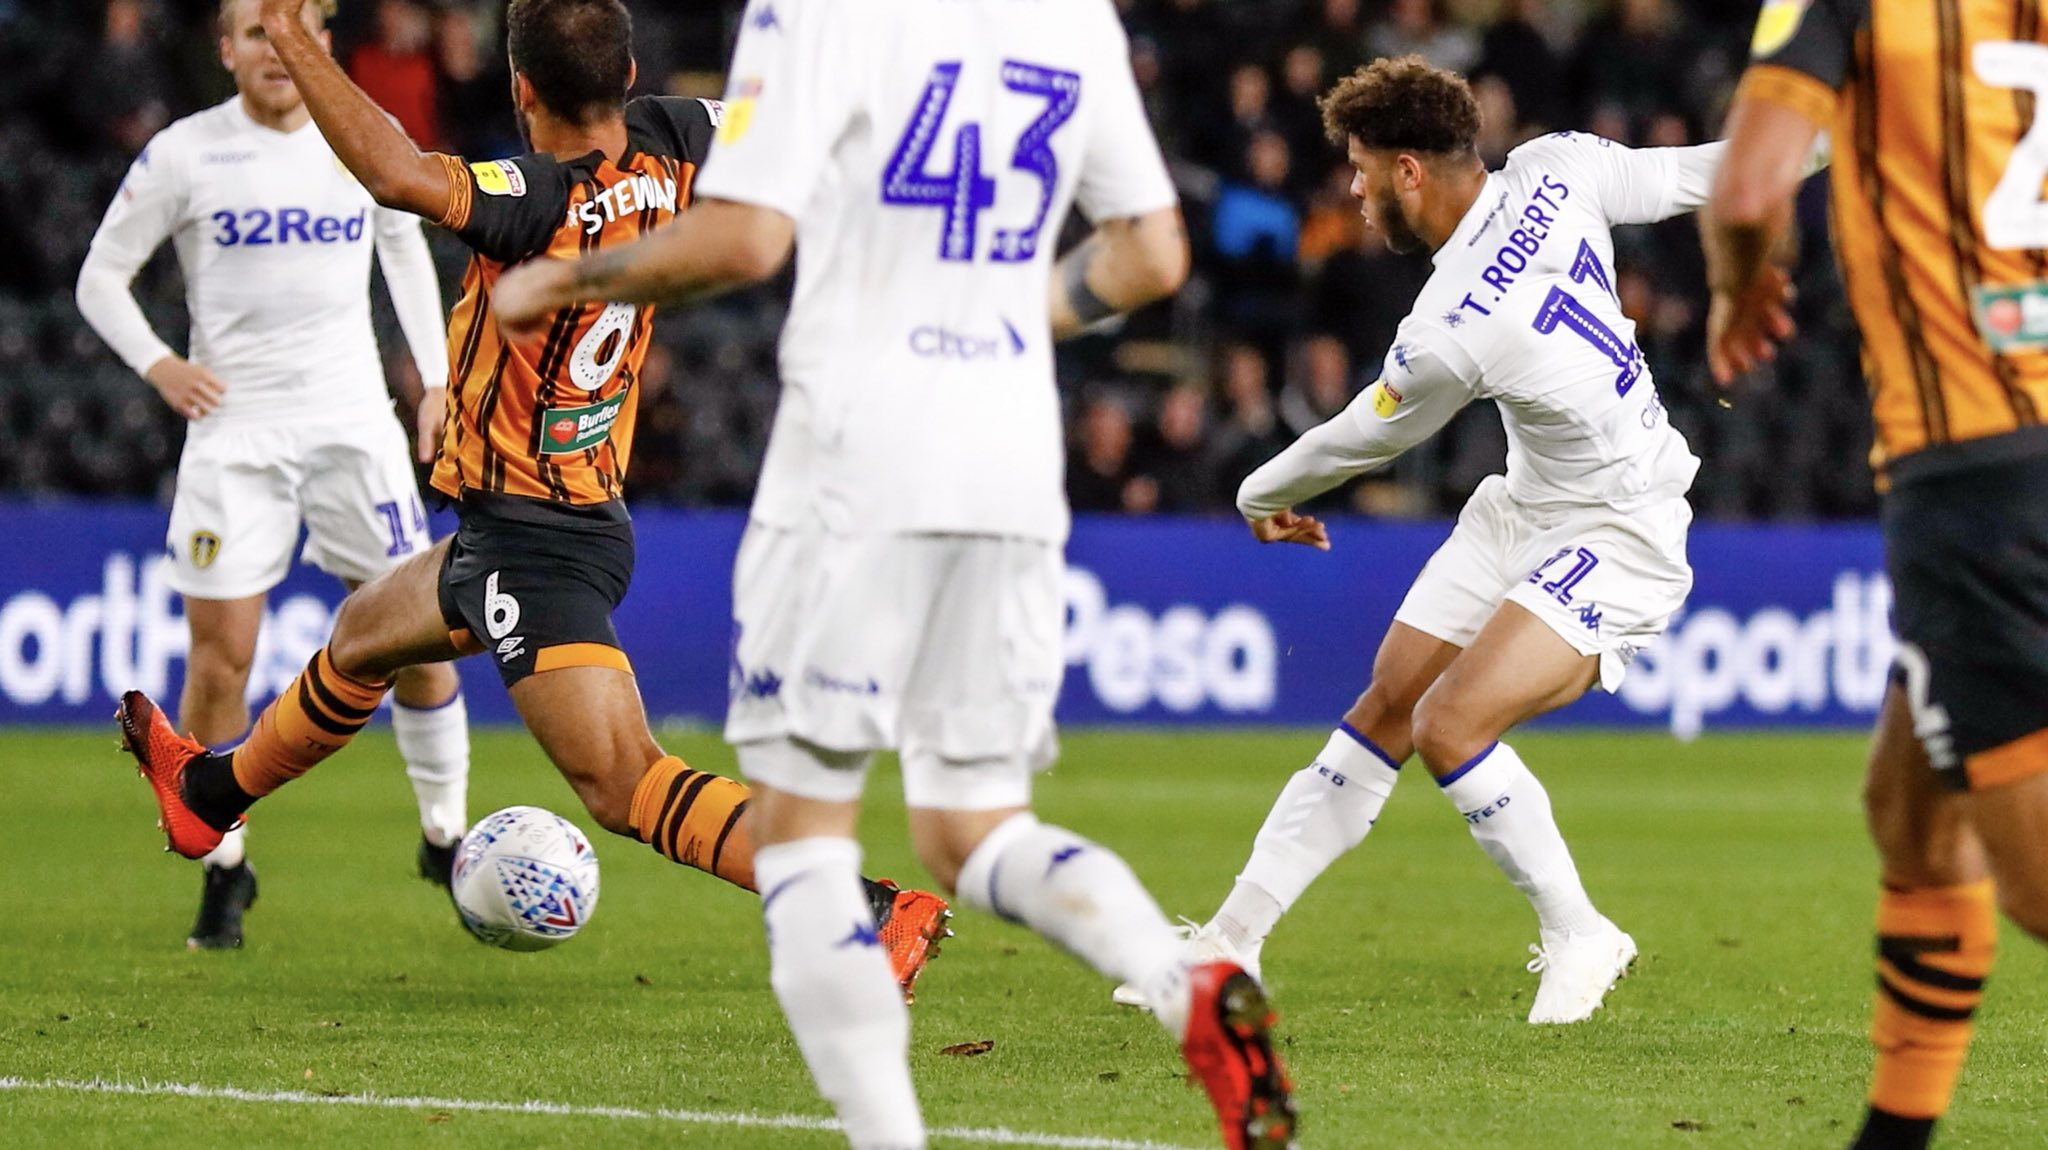 Hull City – Leeds 0-1